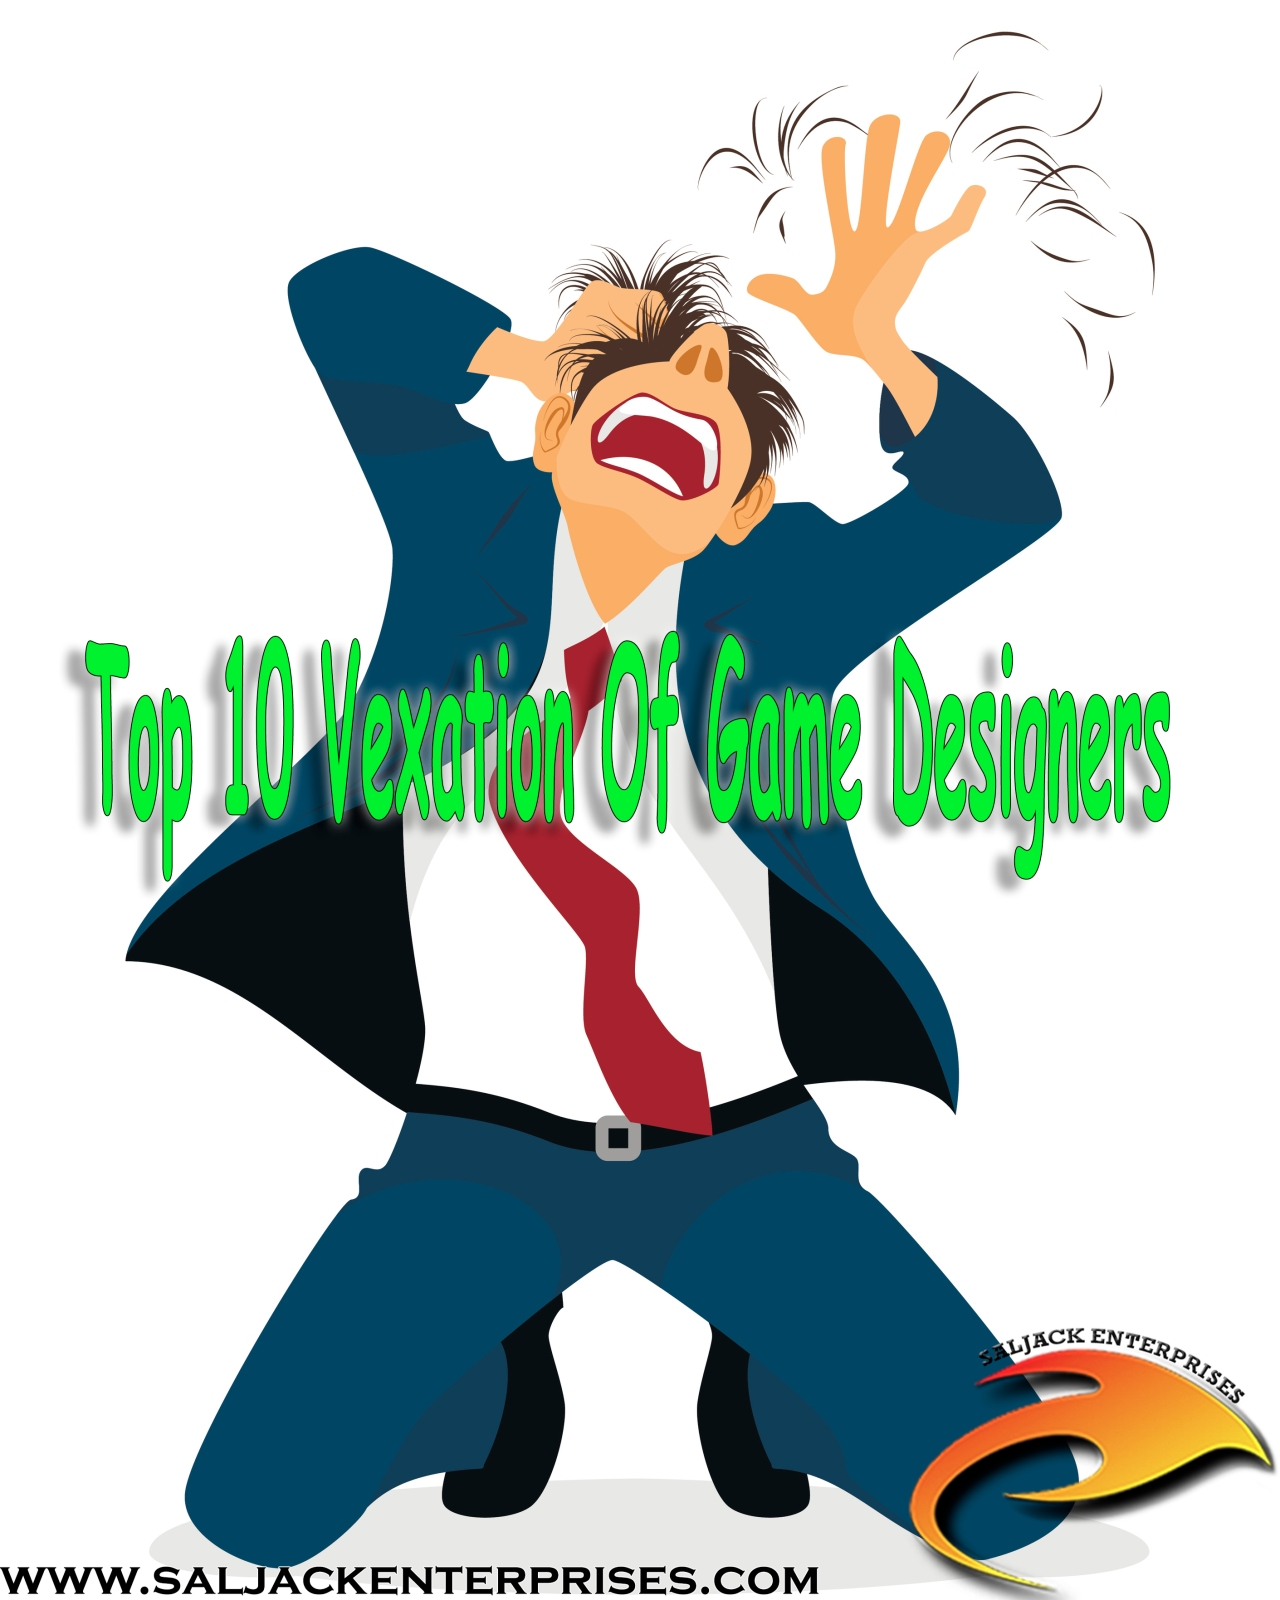 Top 10 Vexation Of Game Designers. Presented by Saljack Enterprises. Gaming. Media & Entertainment.